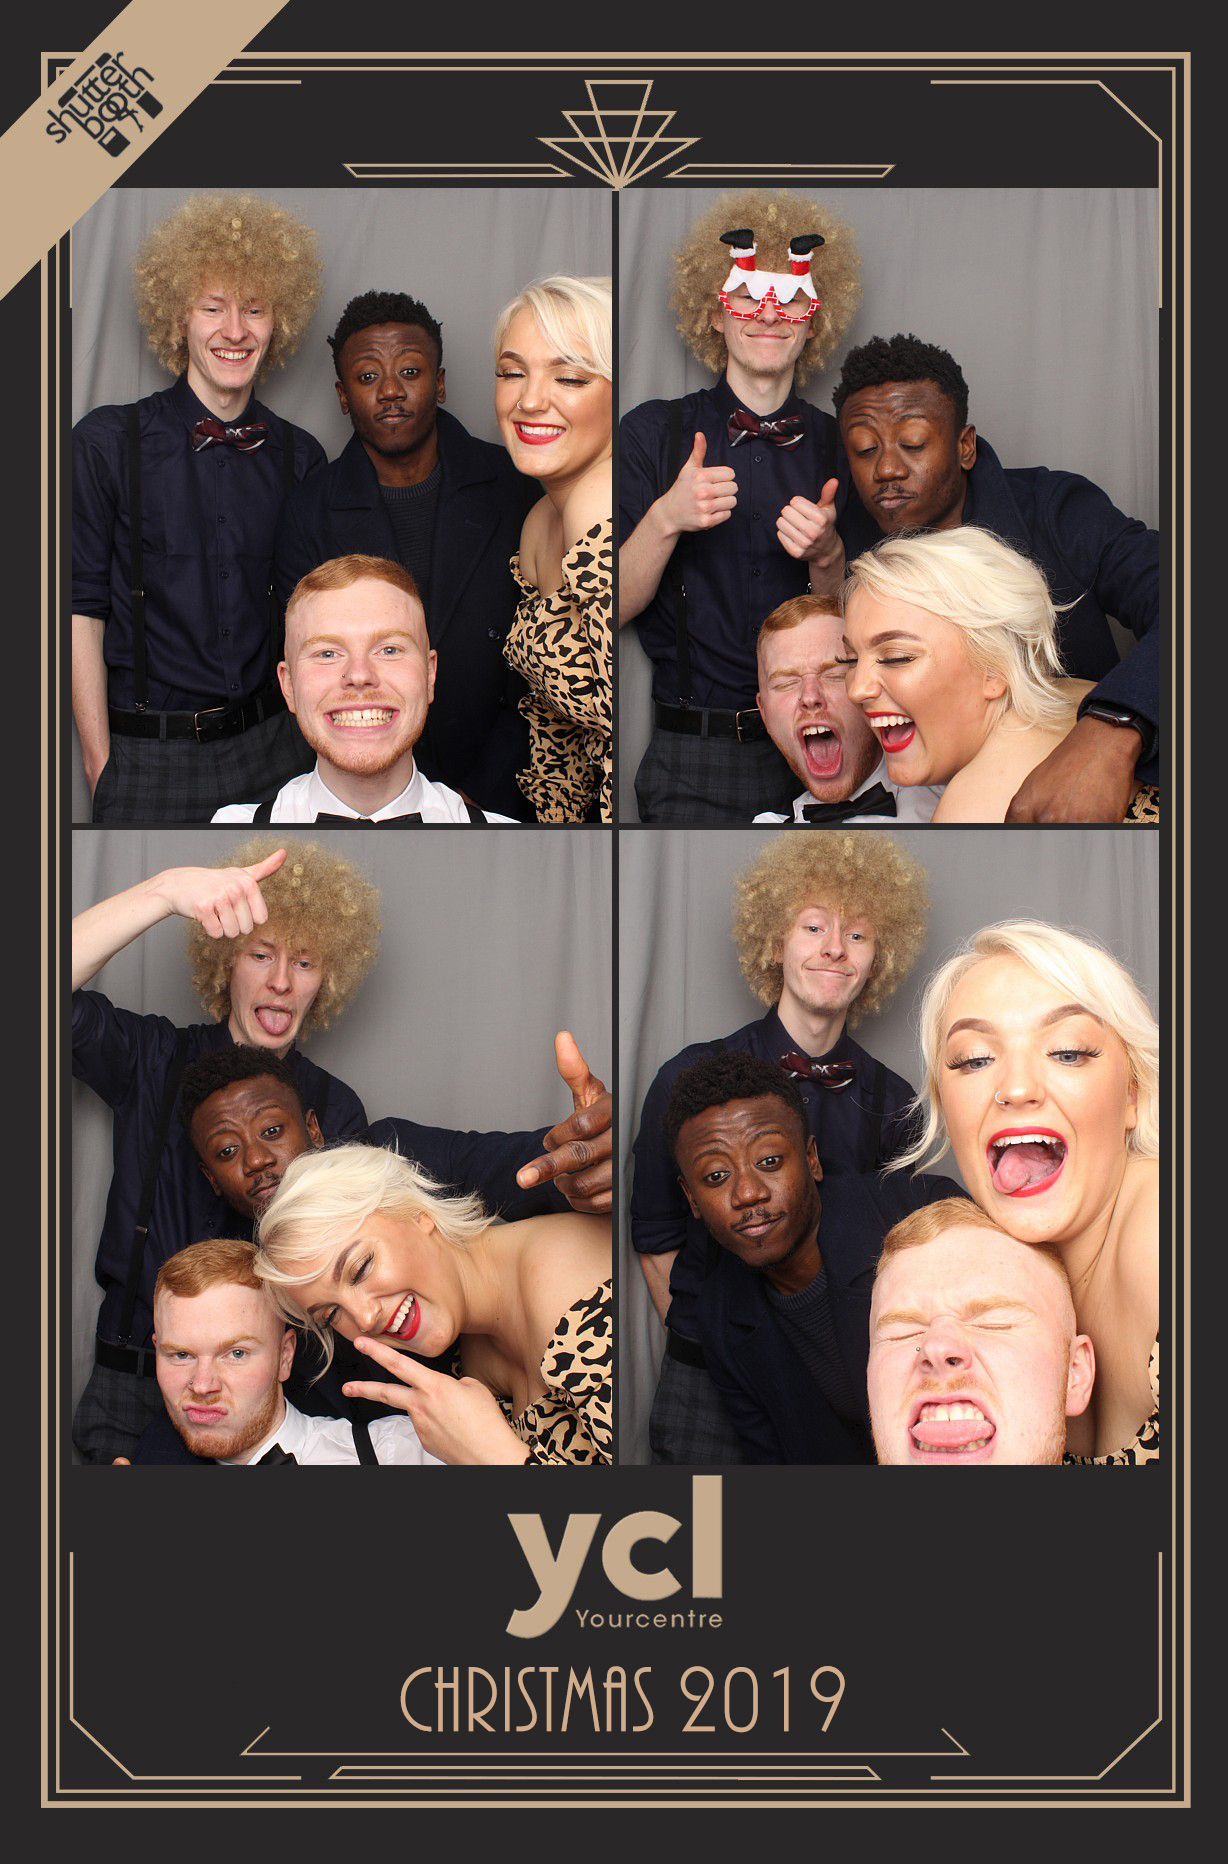 Your Centre Christmas Party 2019 | View more photos from the event at gallery.shutterbooth.co.uk/u/Shutterbooth/Your-Centre-Christmas-Party-2019